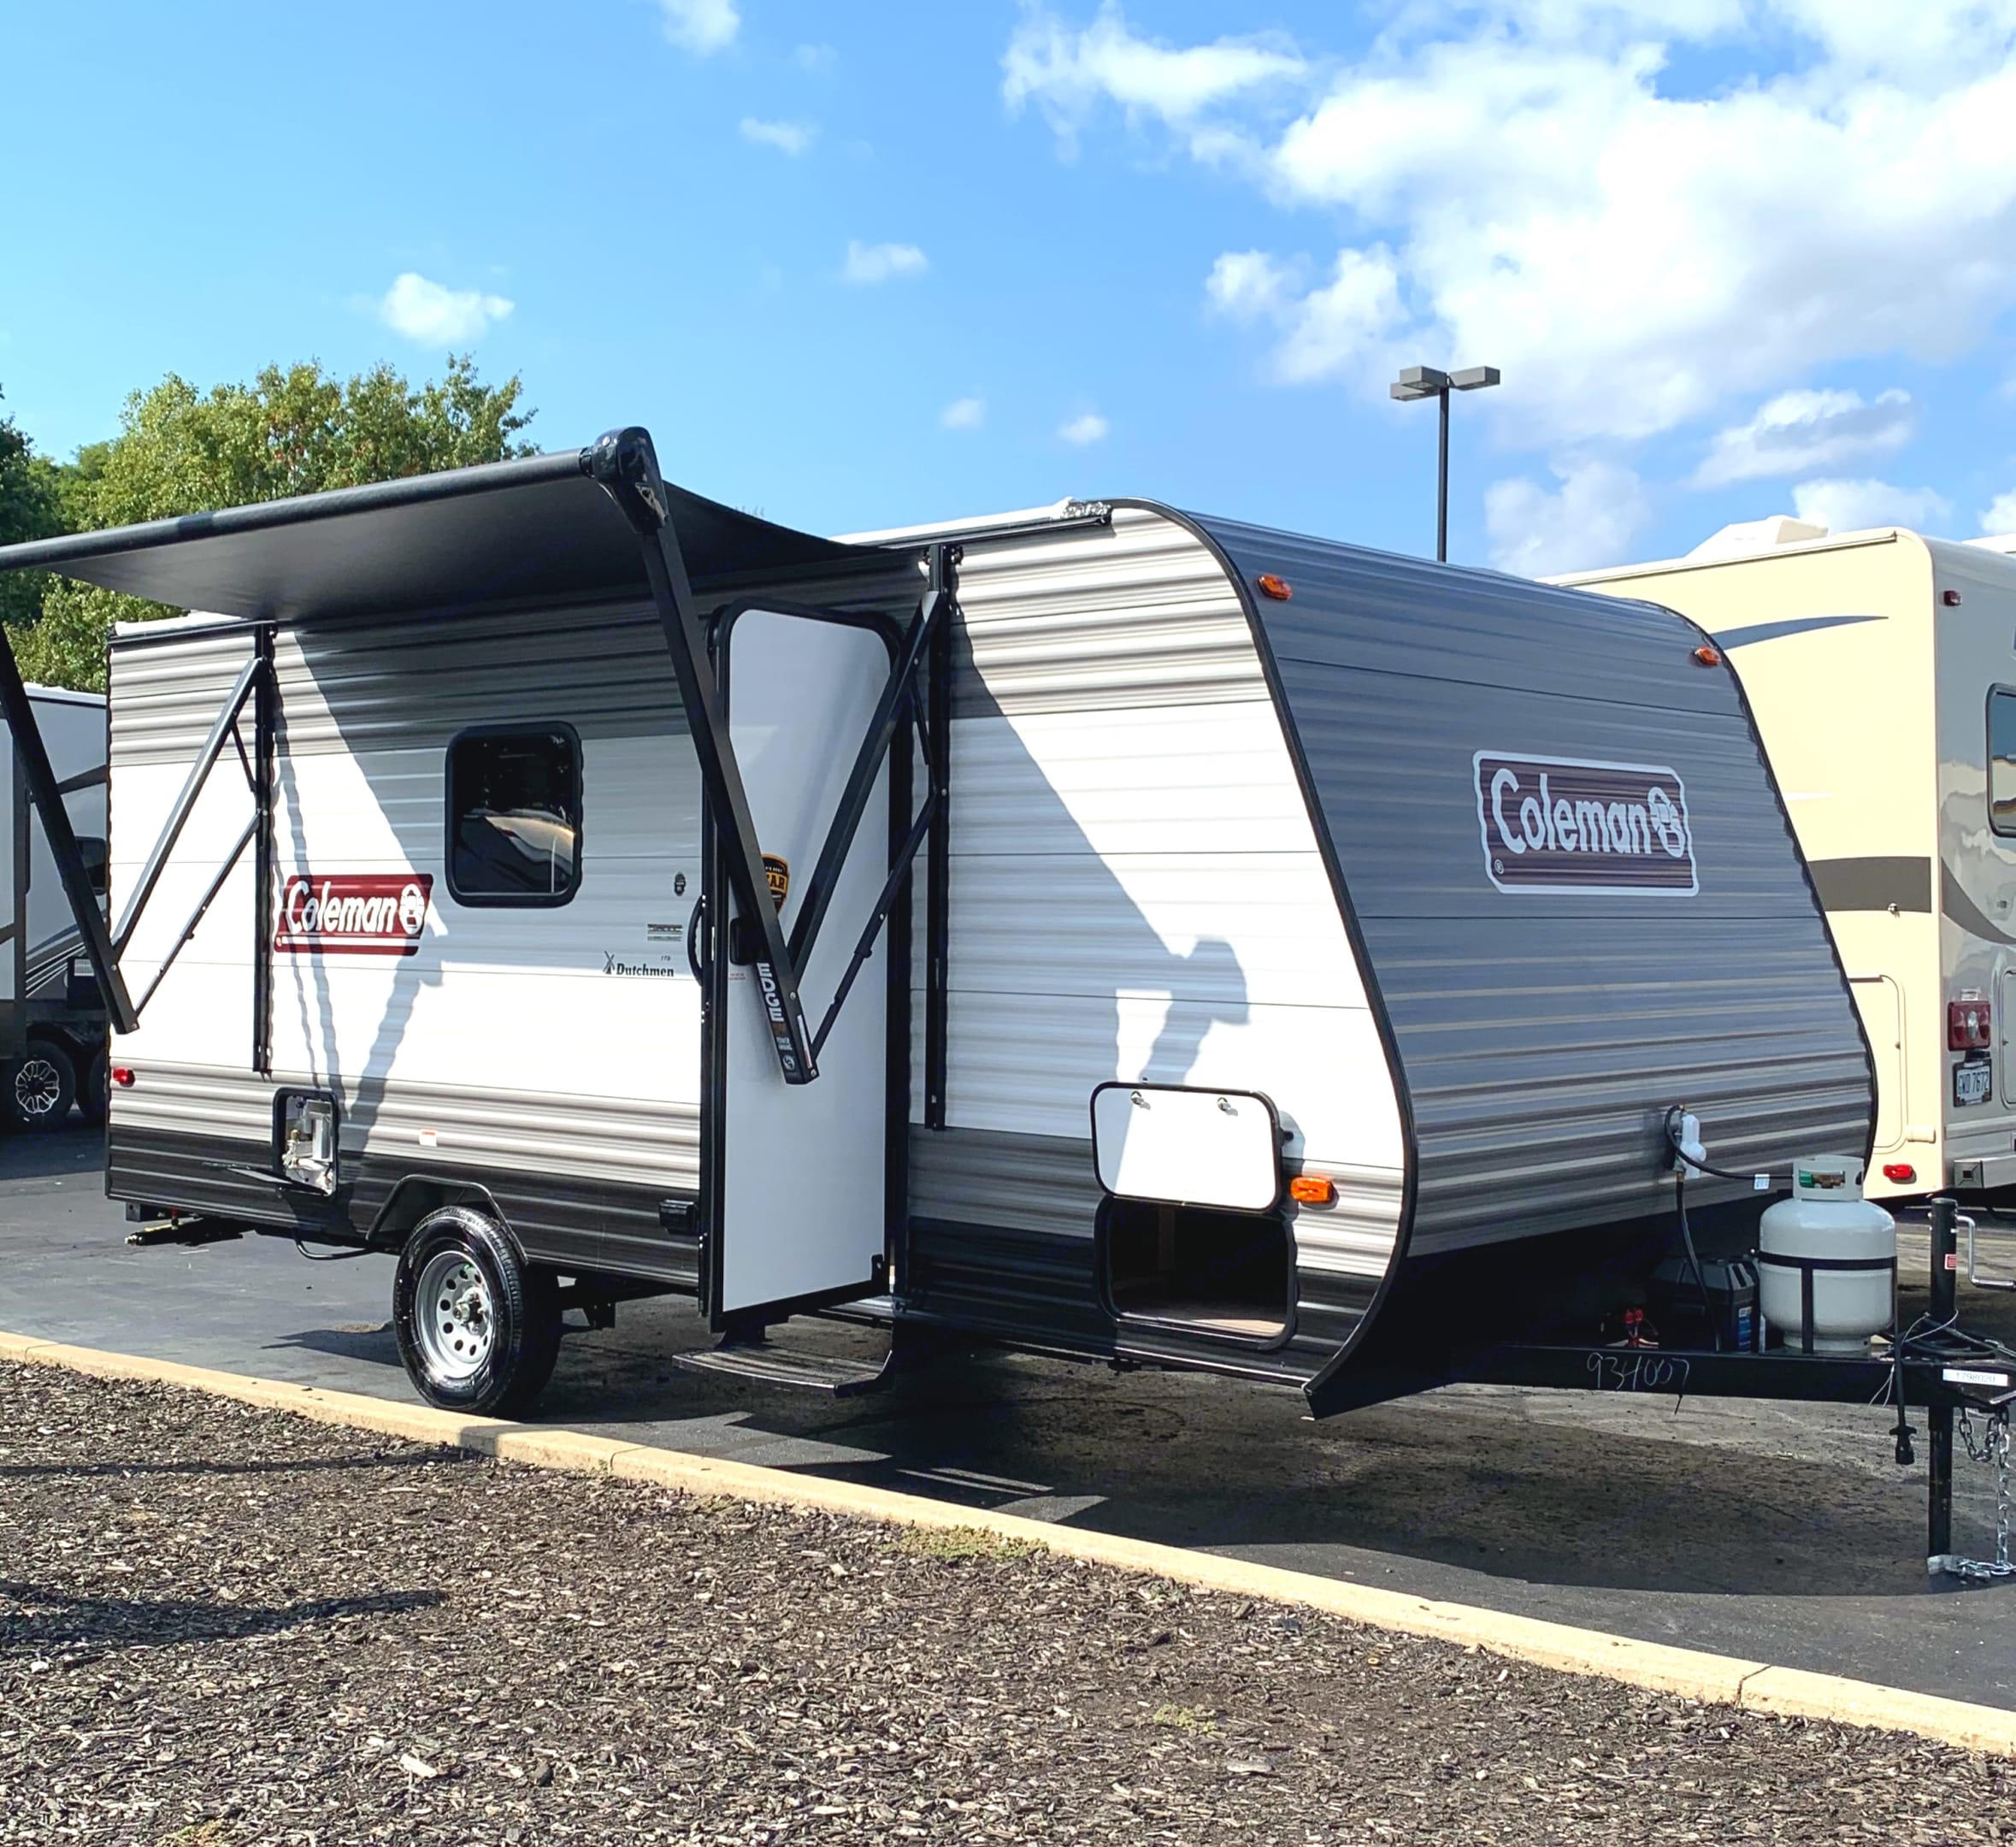 Powered awning will help you to hide from the sun or make cozy place to have a meal. Dutchmen Coleman 2021